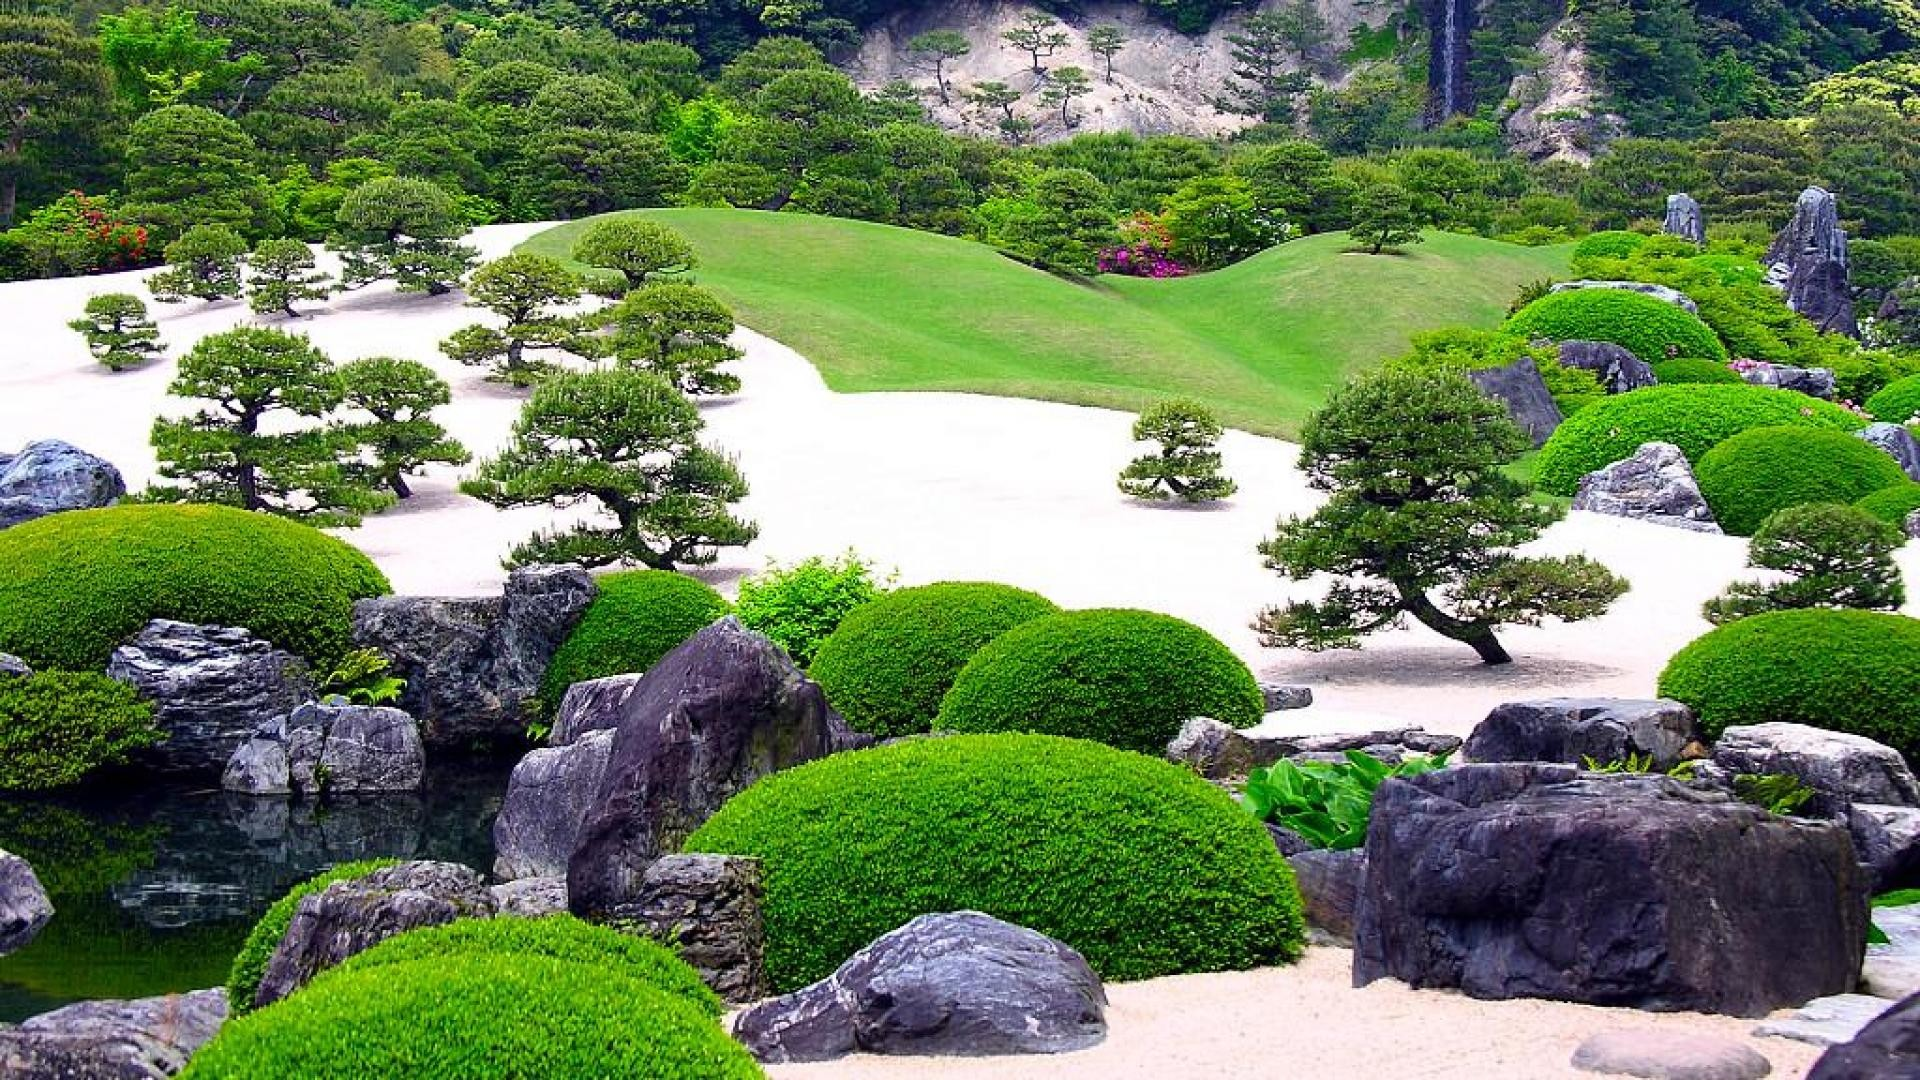 Res: 1920x1080, Japanese Garden Wallpapers 12 - 1920 X 1080